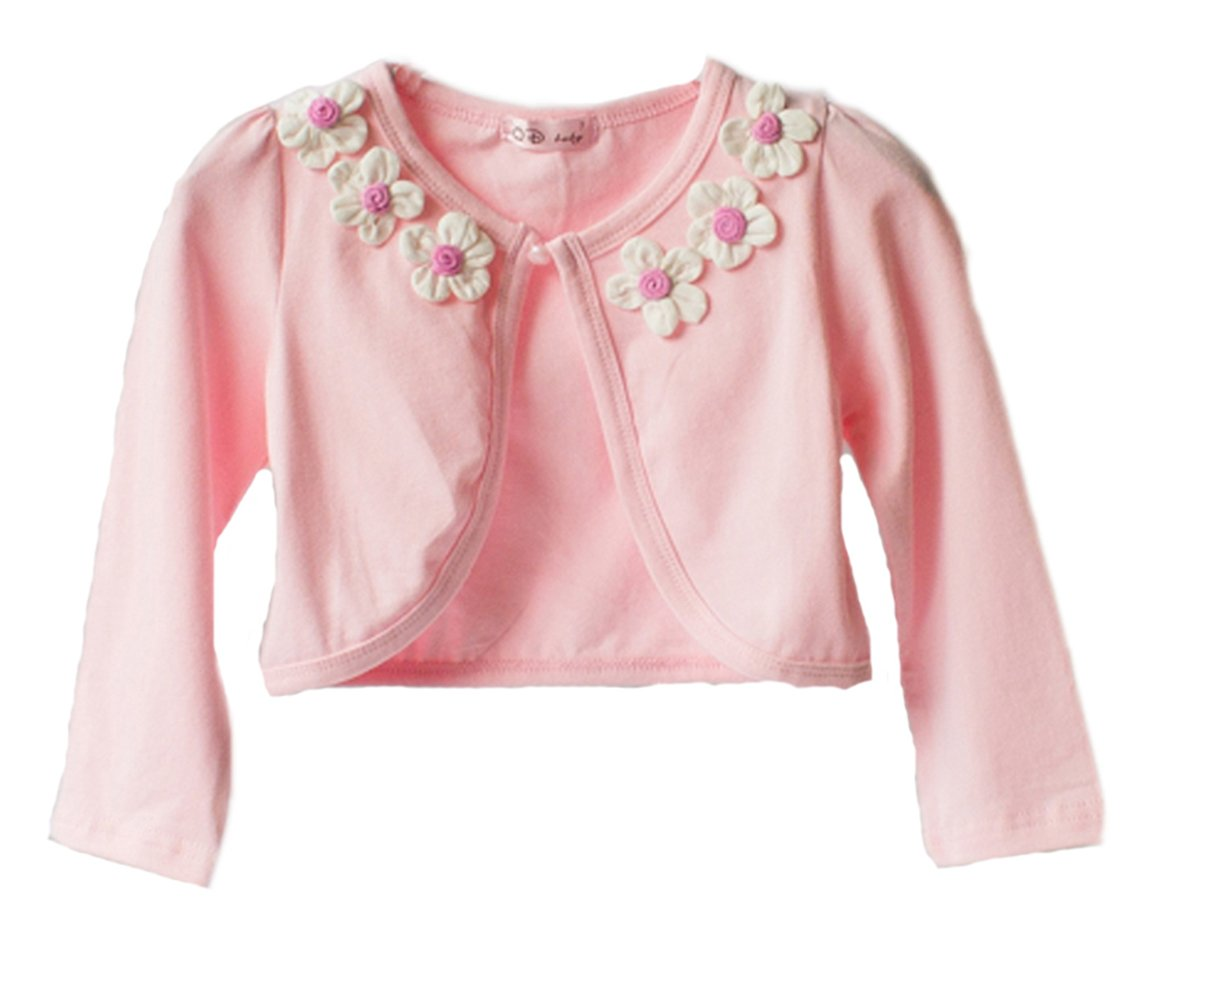 Cinda Clothing Baby Girls' Cotton Bolero